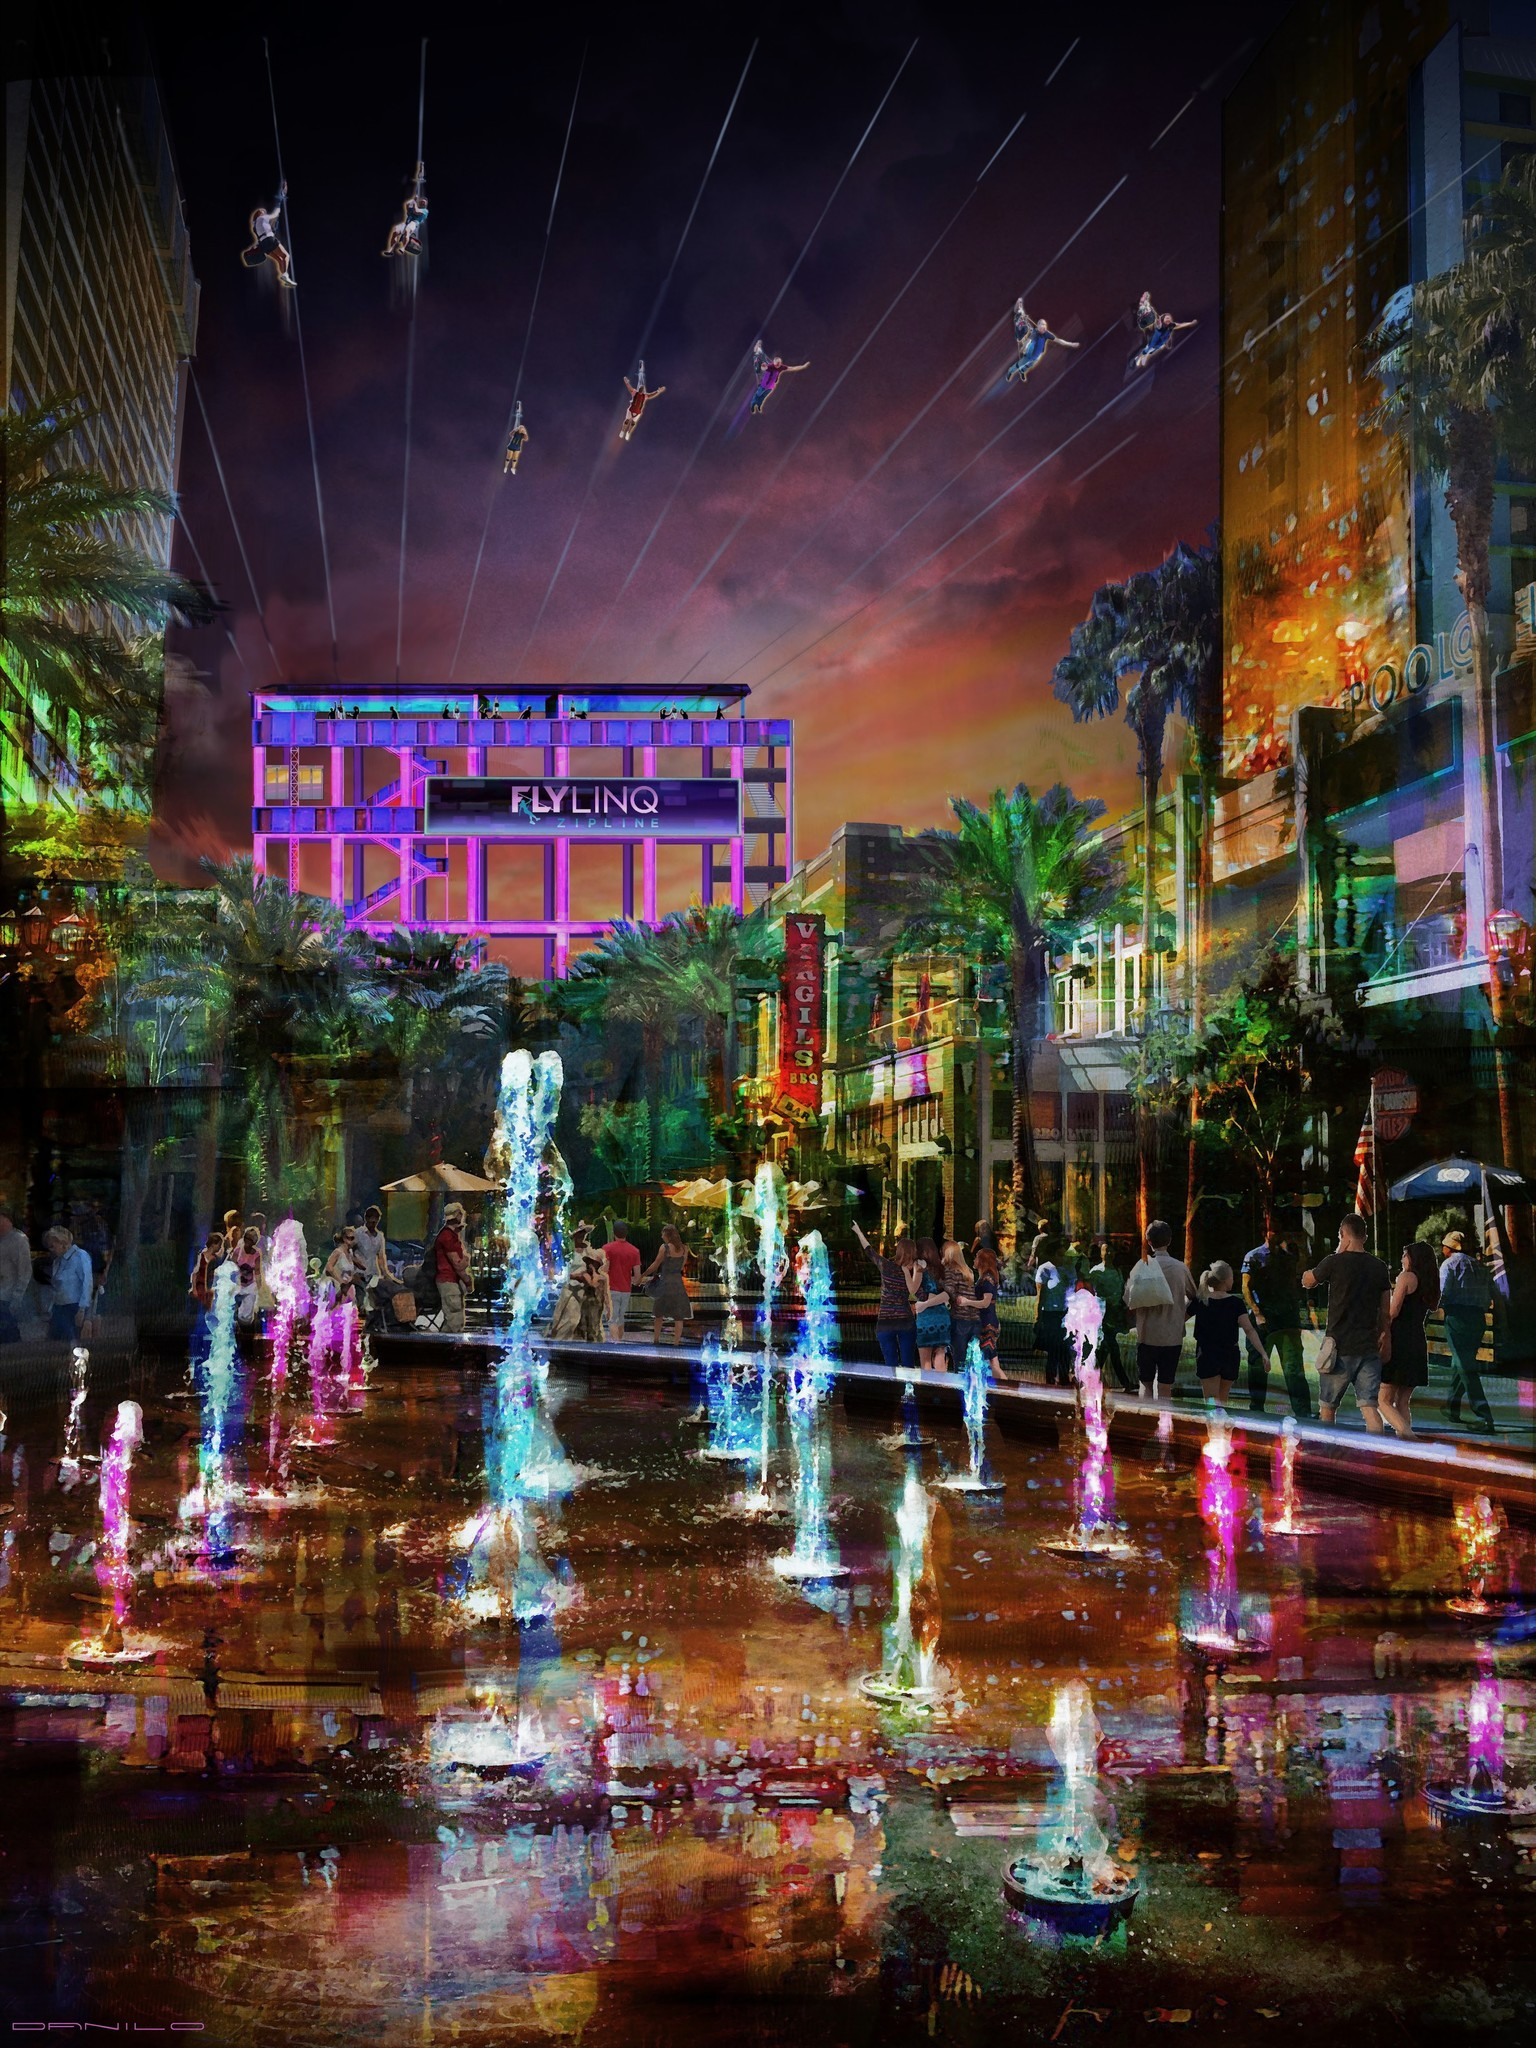 Fly Linq, the third zip-line in Las Vegas, is expected to open late in 2018. It's seen here in an artist's rendering.